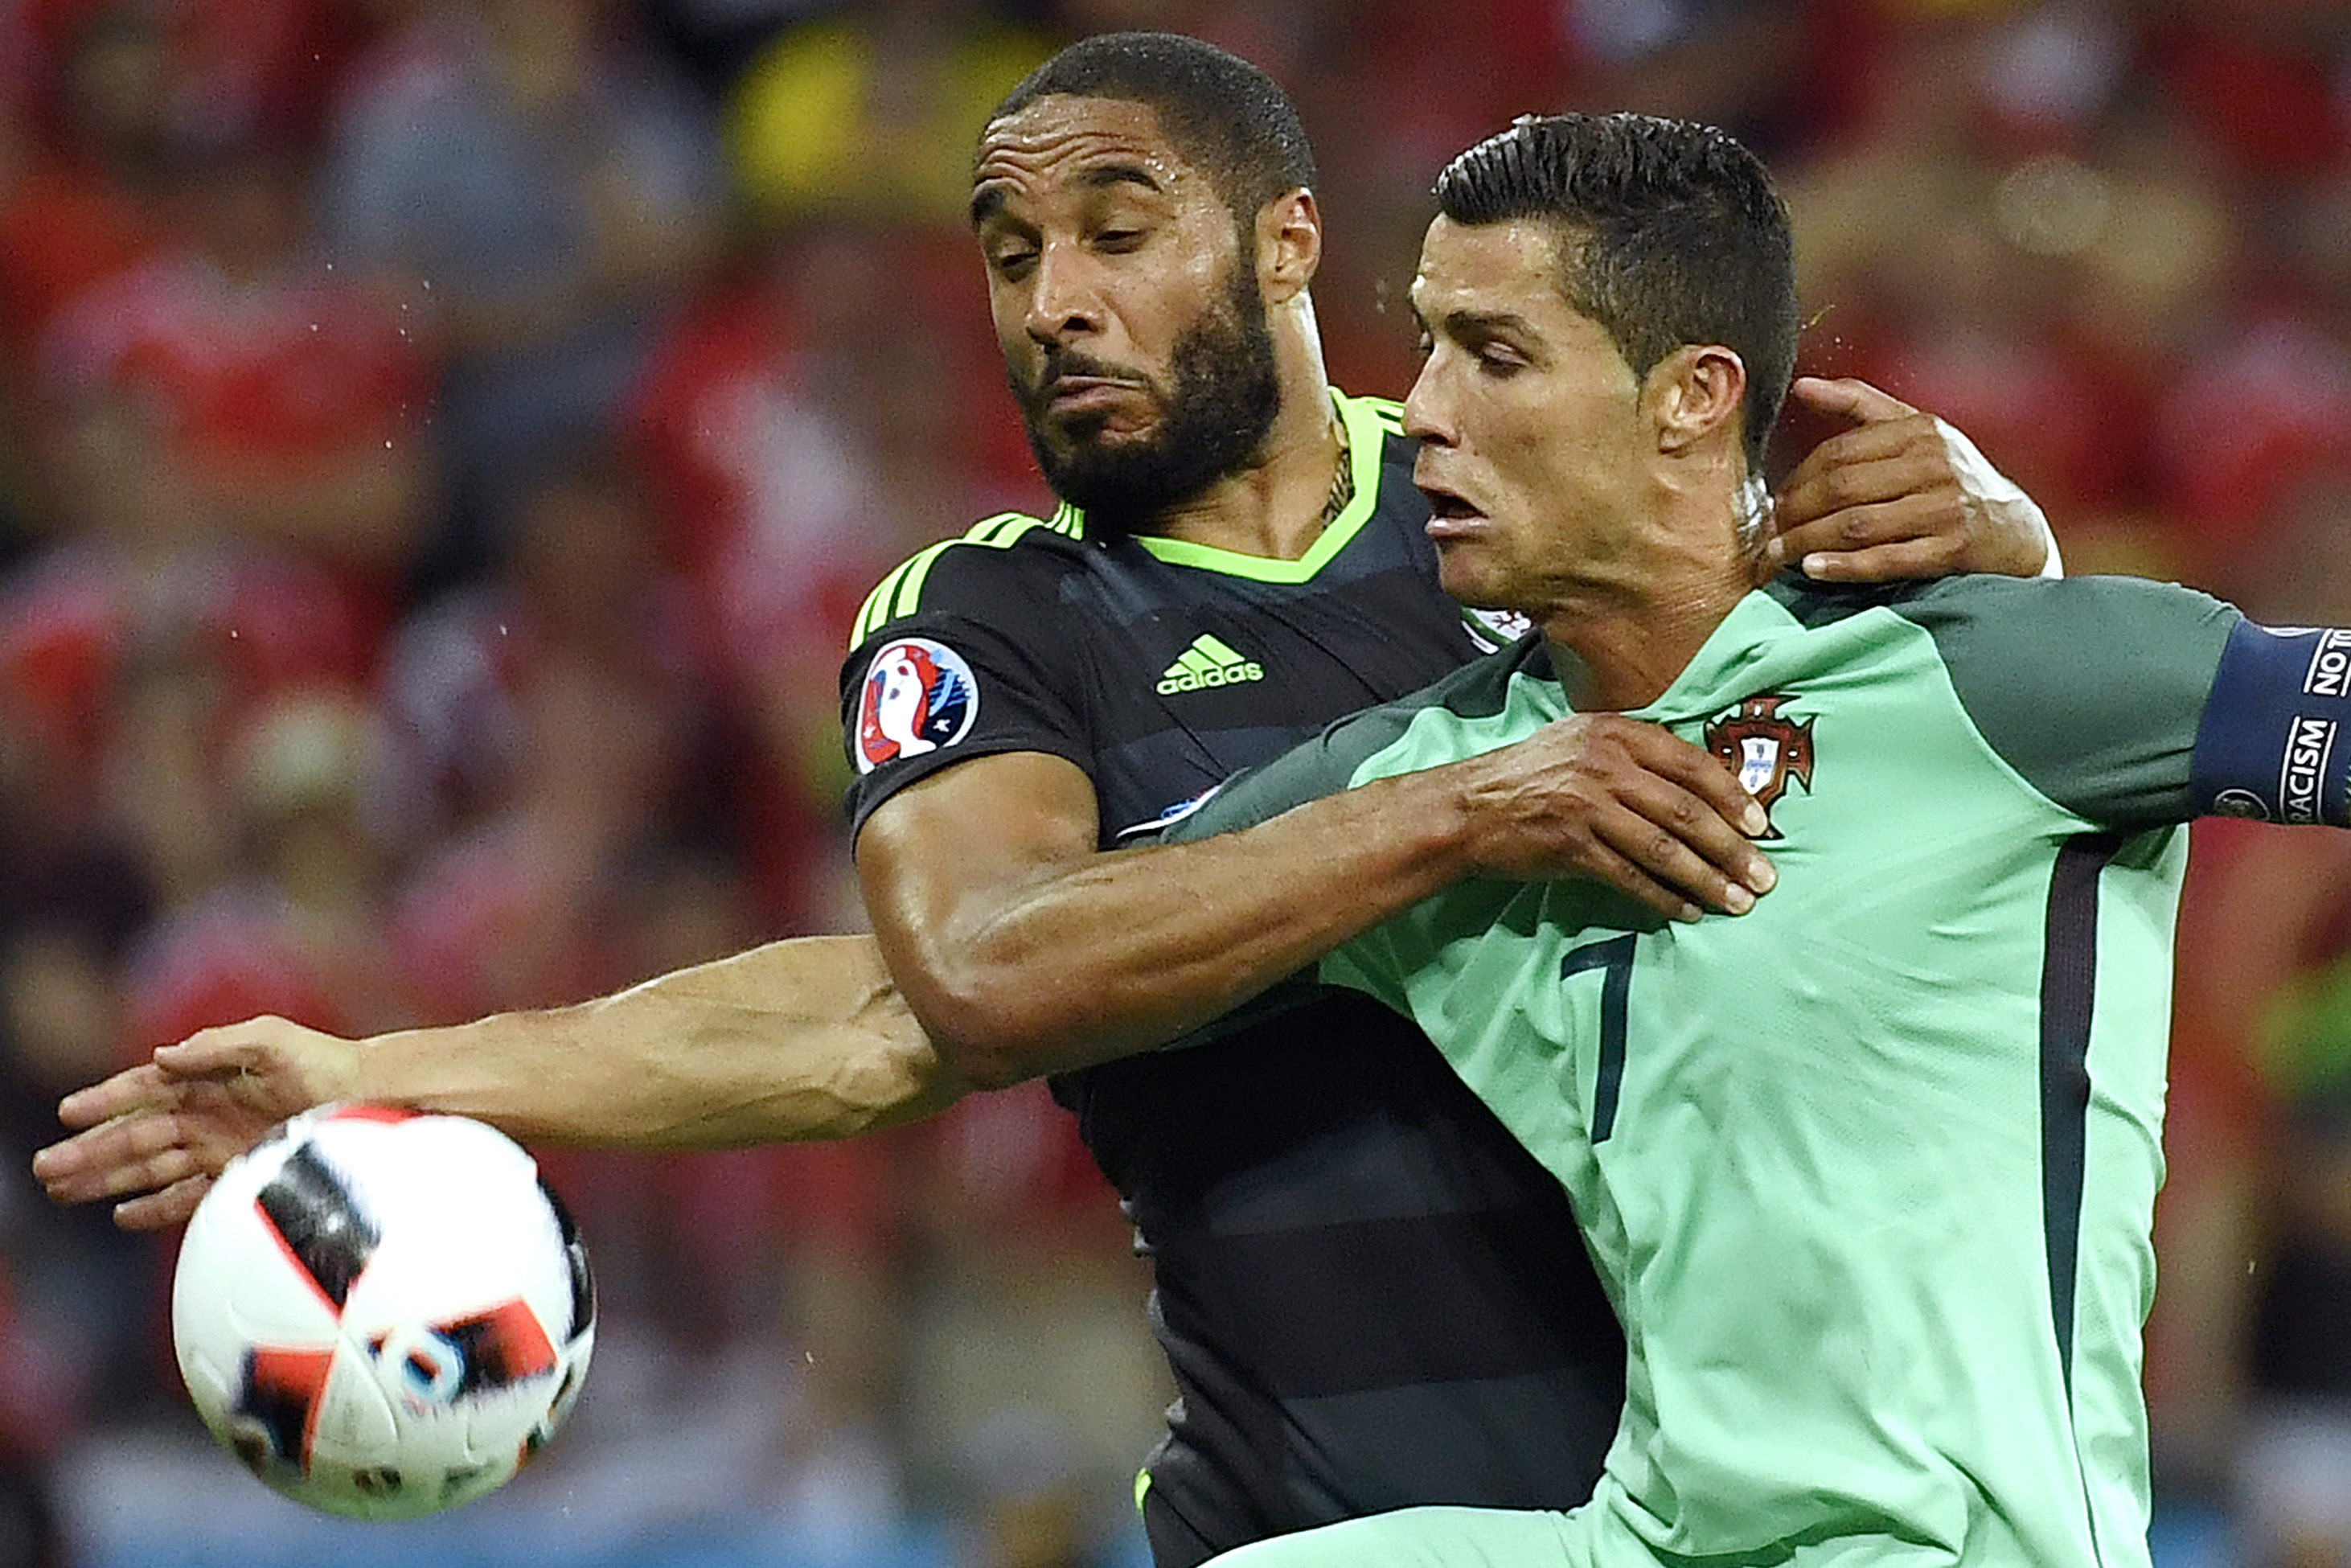 wales vs portugal , euro semifinal wales 2016 score, portugal wales score, portugal wales results, portugal wales highlights, 2016, who won match portugal wales, portugal wales partido, portugal wales 2016 highlights, portugal wales all goals